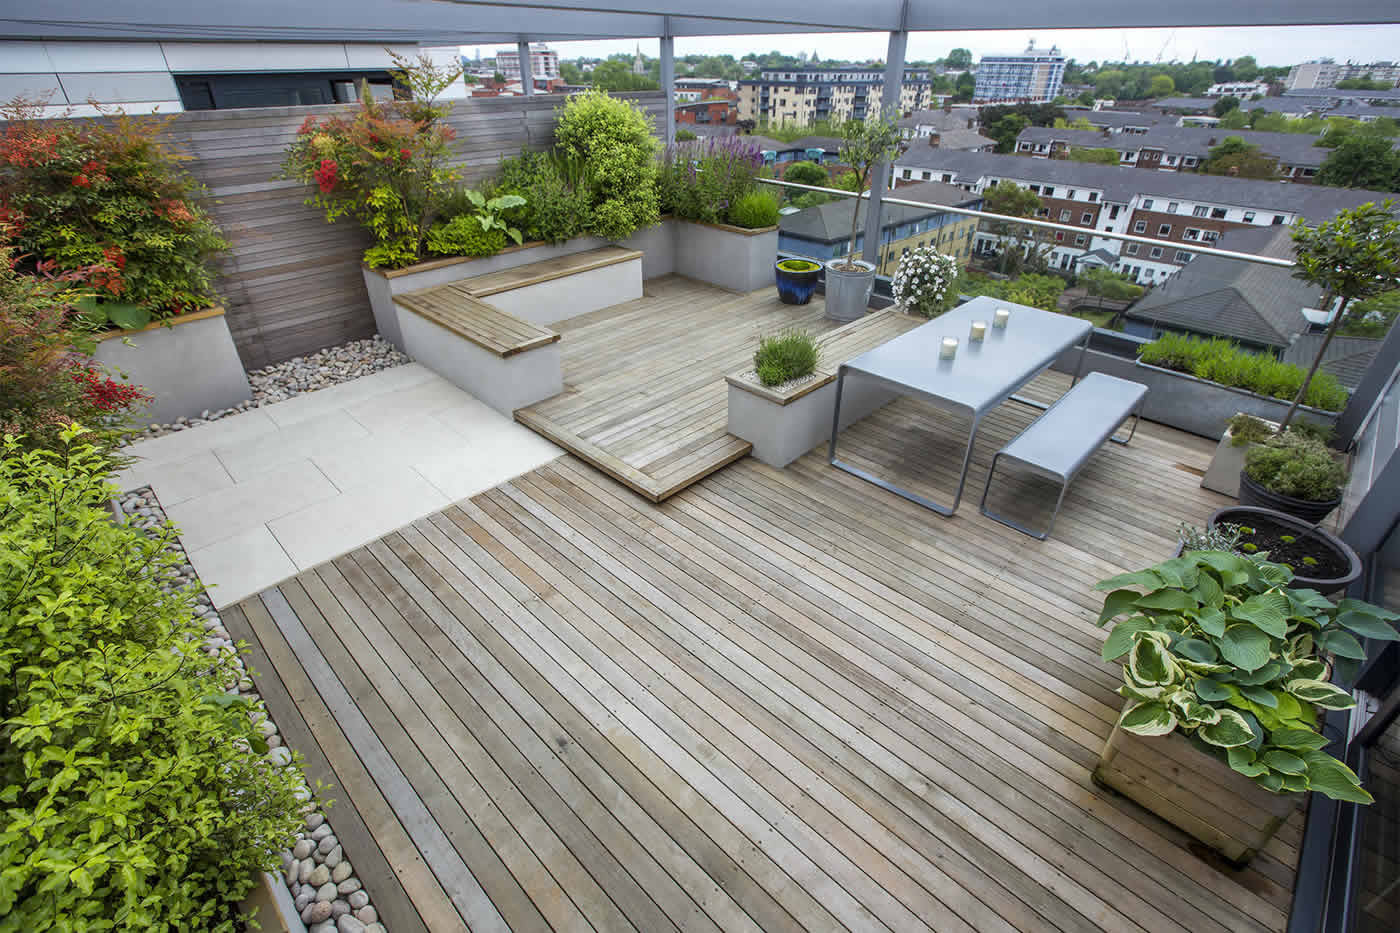 Rooftop Terrace Landscape  Revamp Your Boring Terrace With These Magnificent Roof